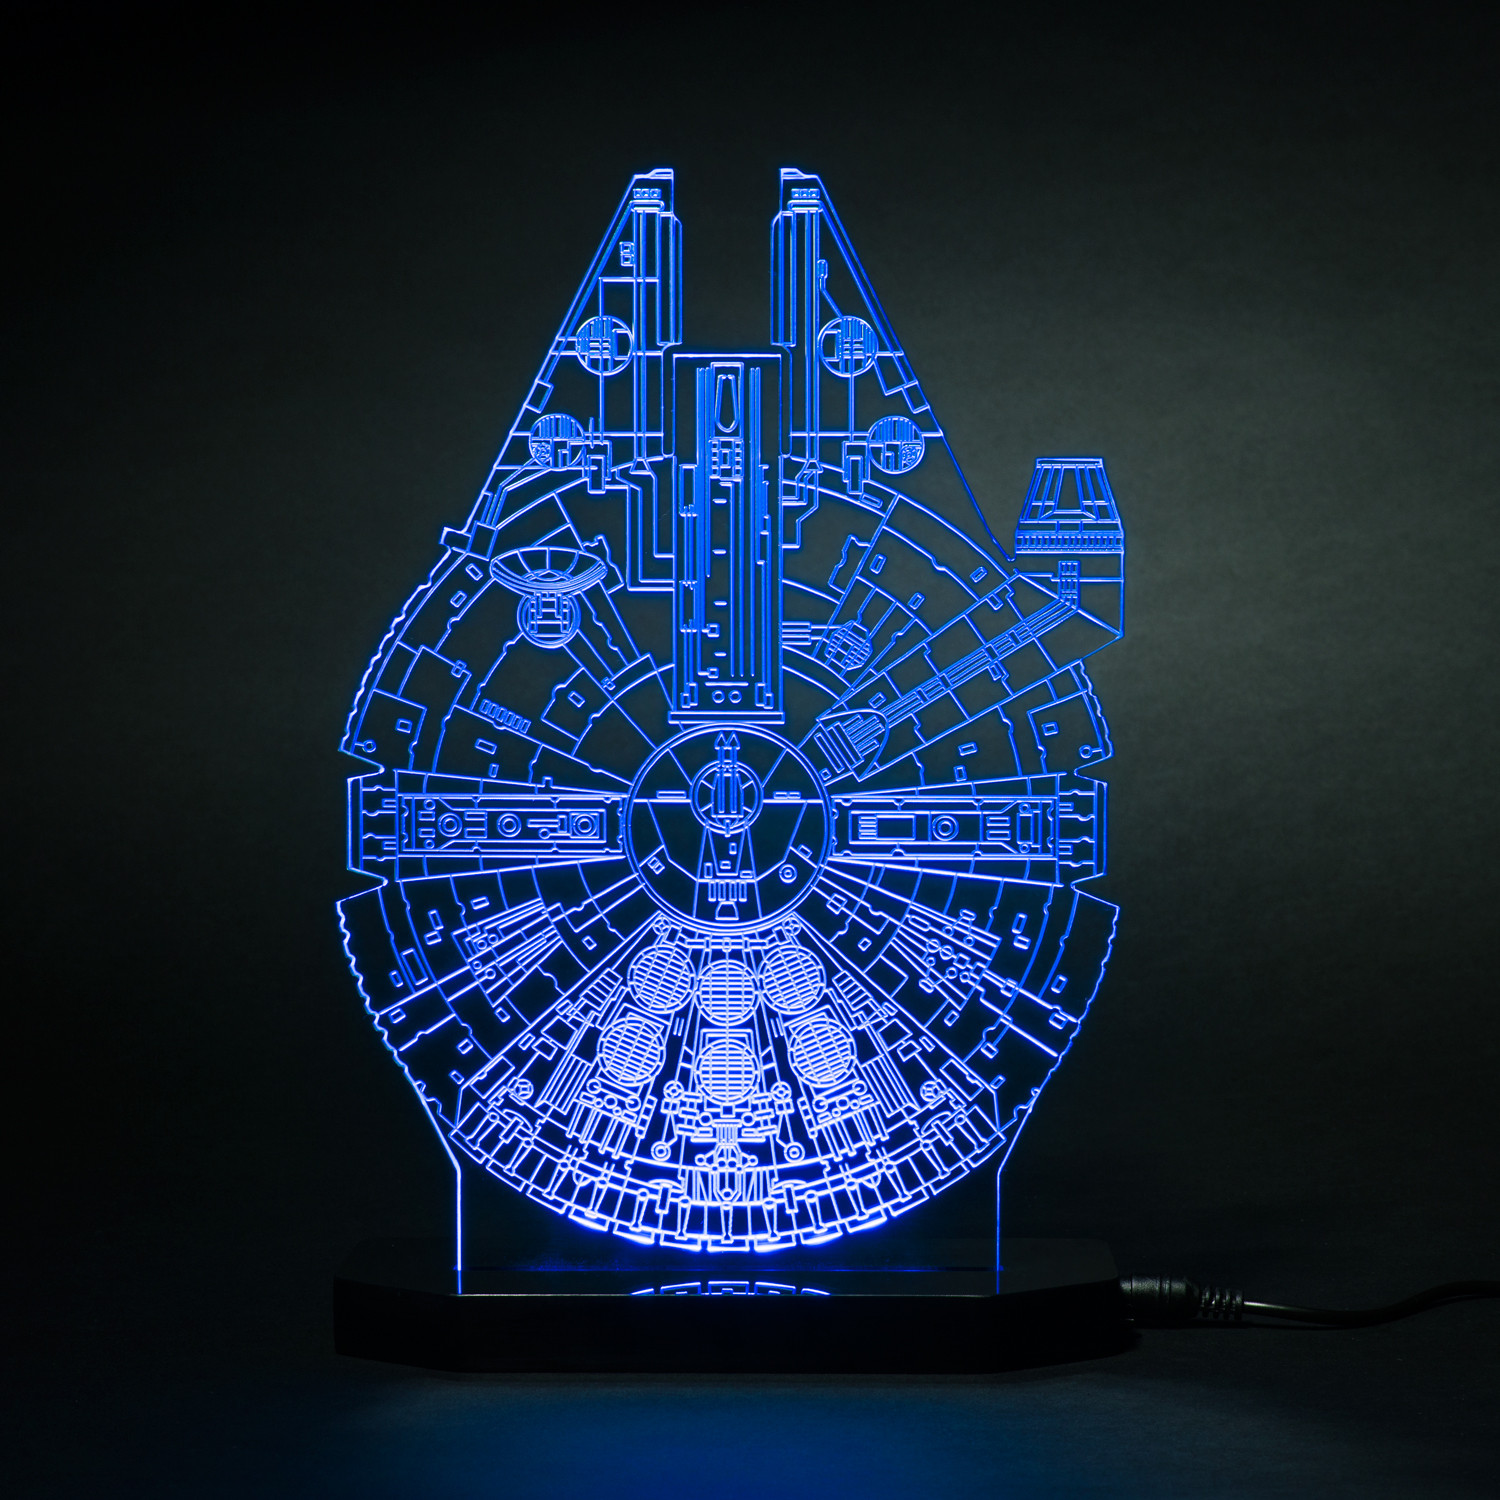 millennium falcon star wars led lamps touch of modern. Black Bedroom Furniture Sets. Home Design Ideas